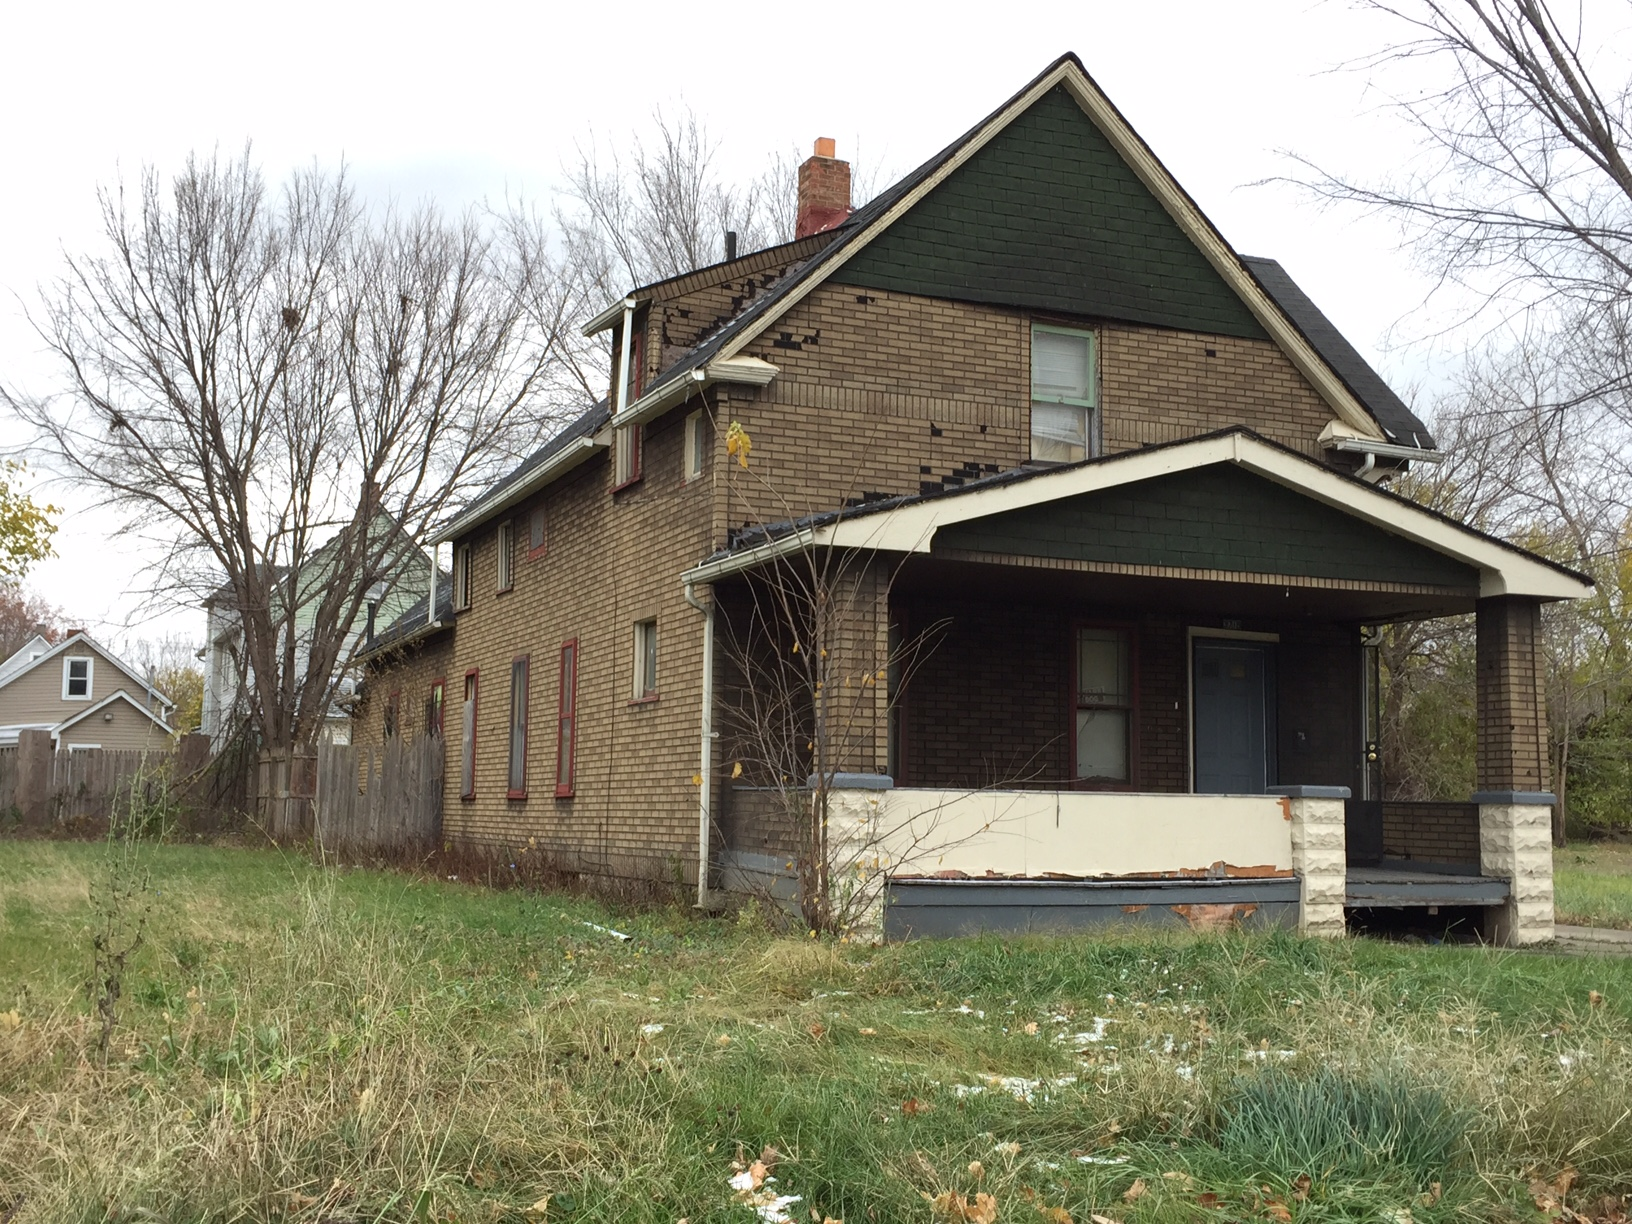 East 54th vacant home